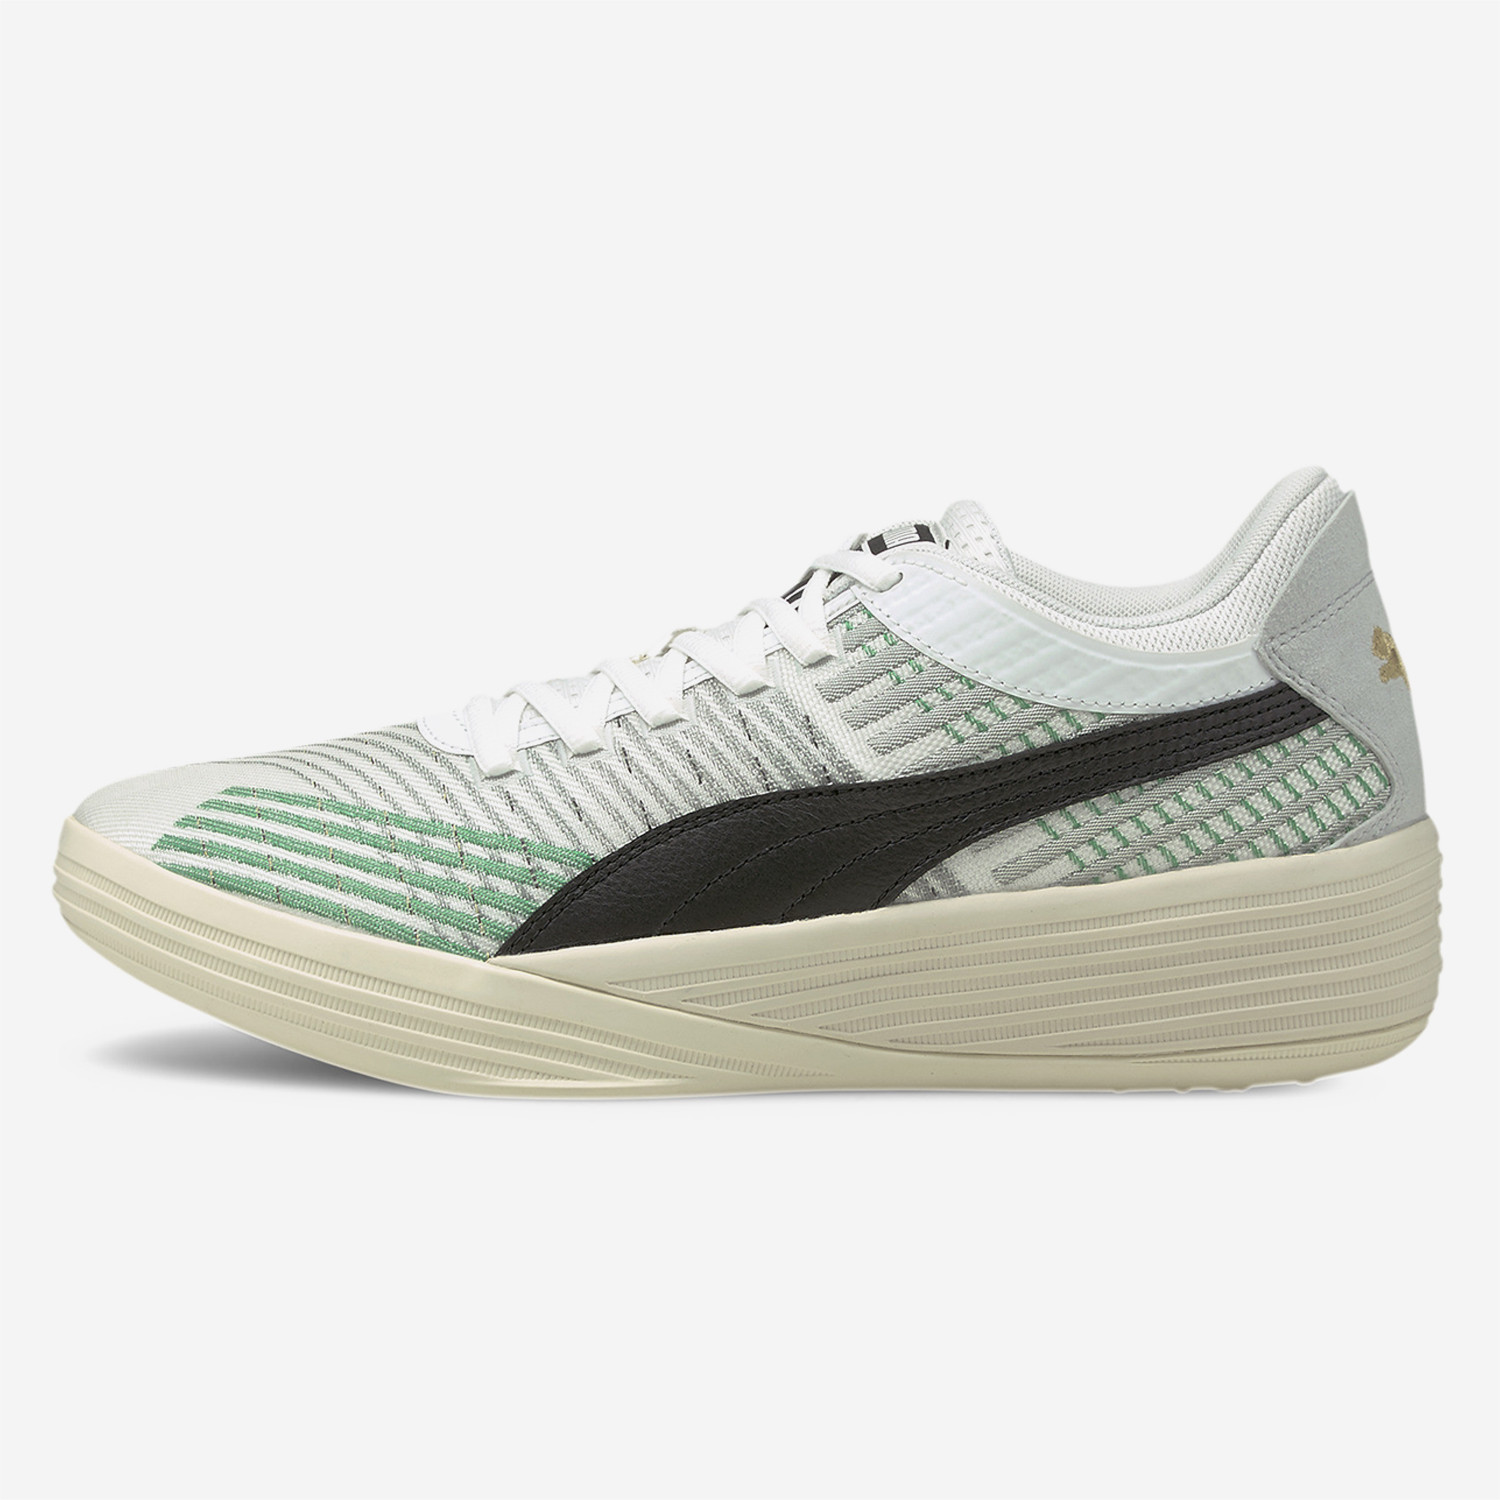 Puma Clyde All-Pro Coast 2 Coast Basketball Shoes (9000072709_51318)